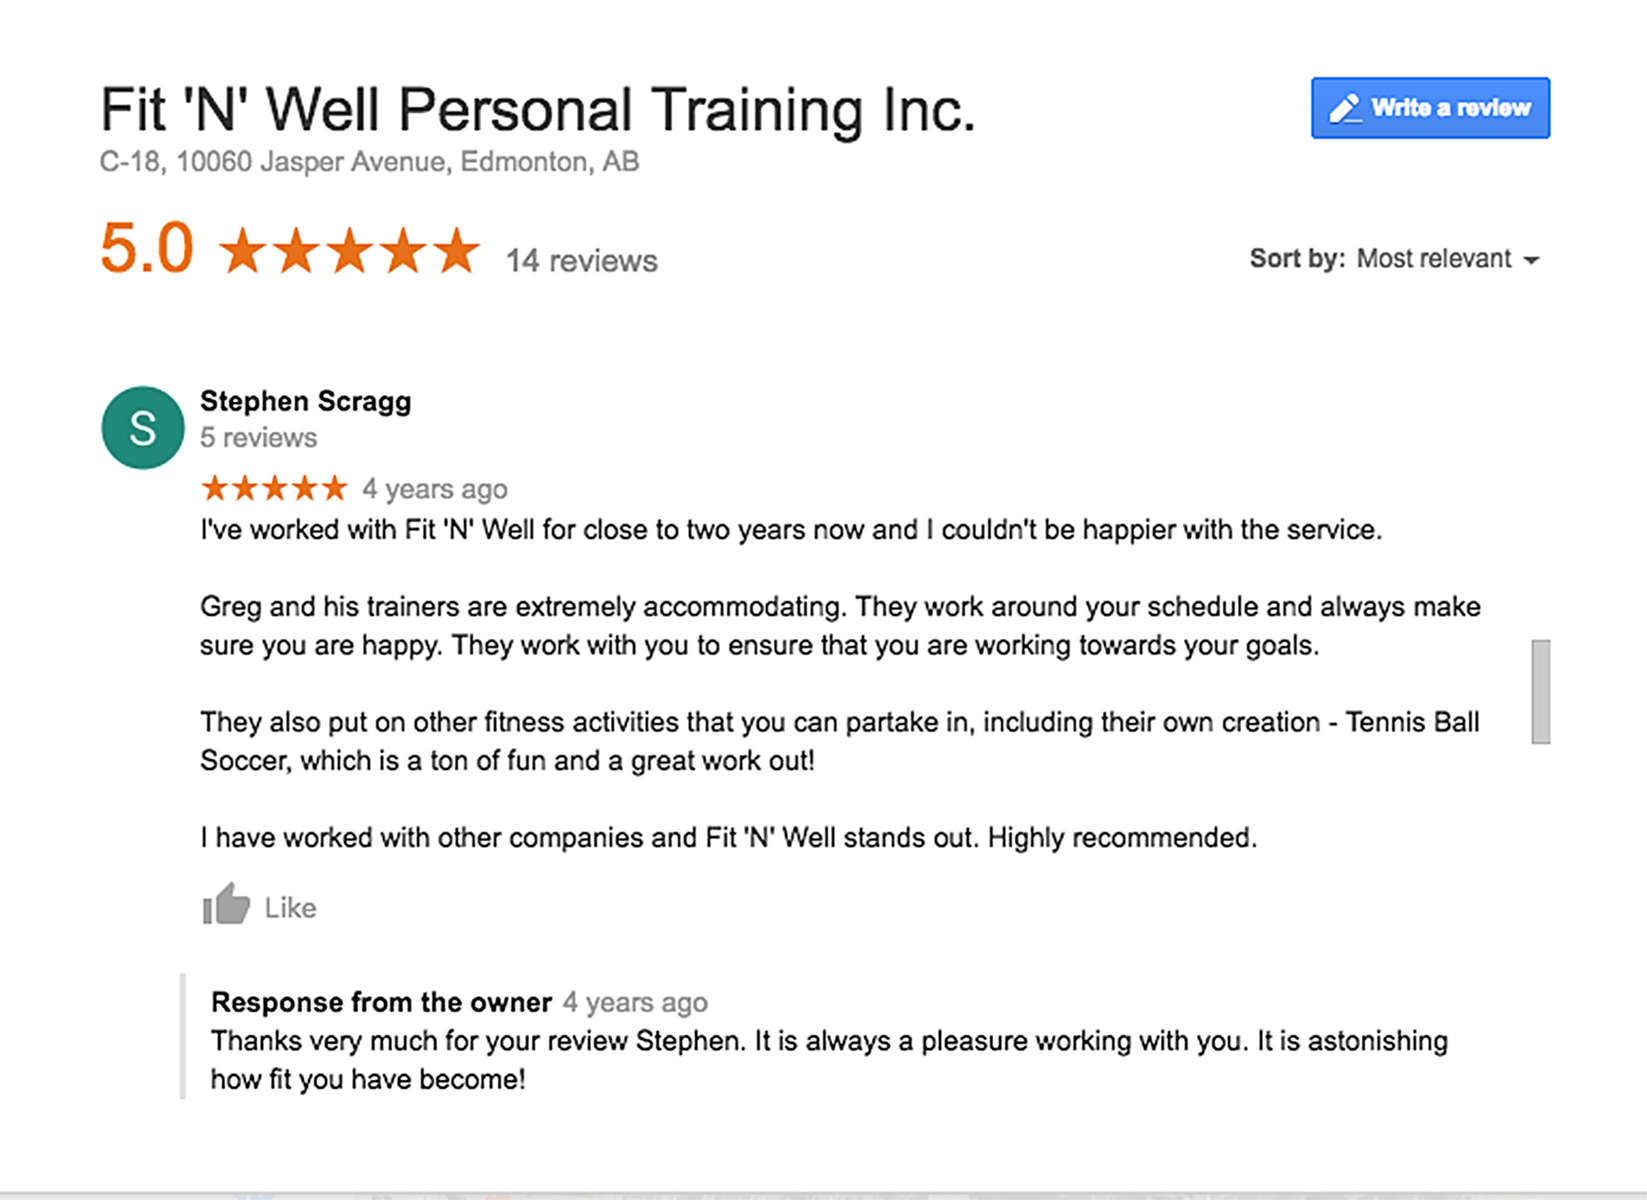 Client testimonial for Fit 'N' Well Personal Trainer